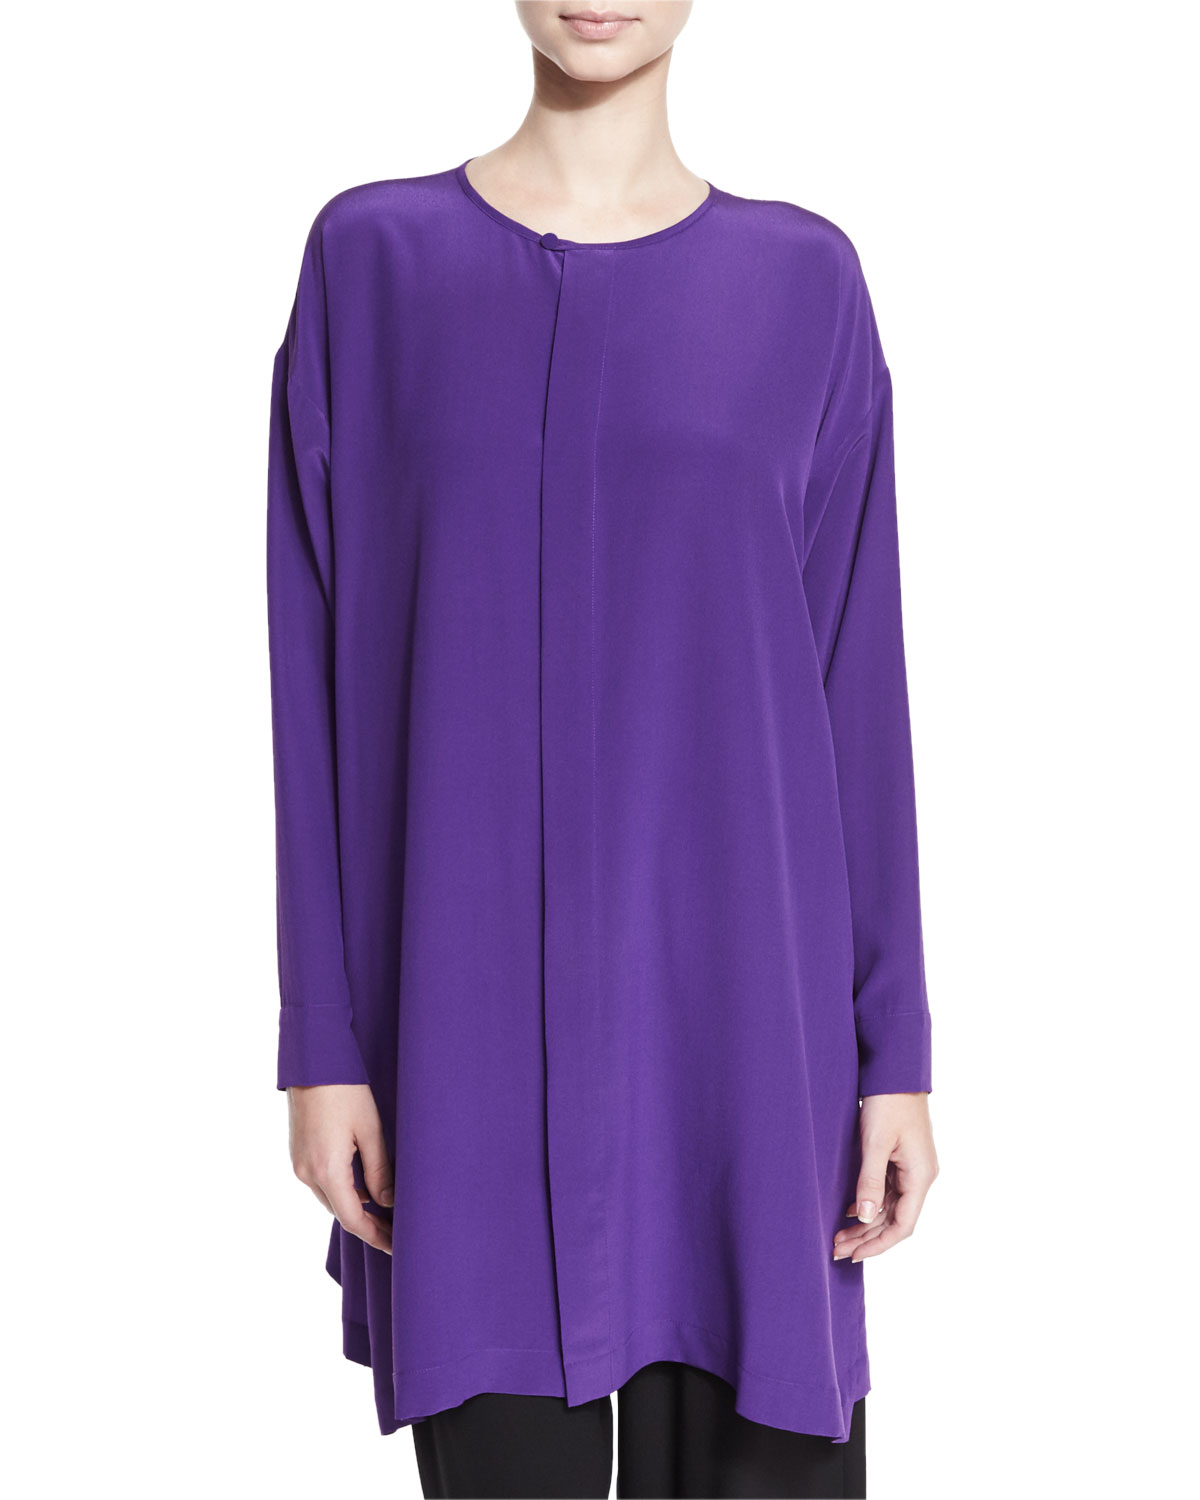 A-Line Silk Crepe Top